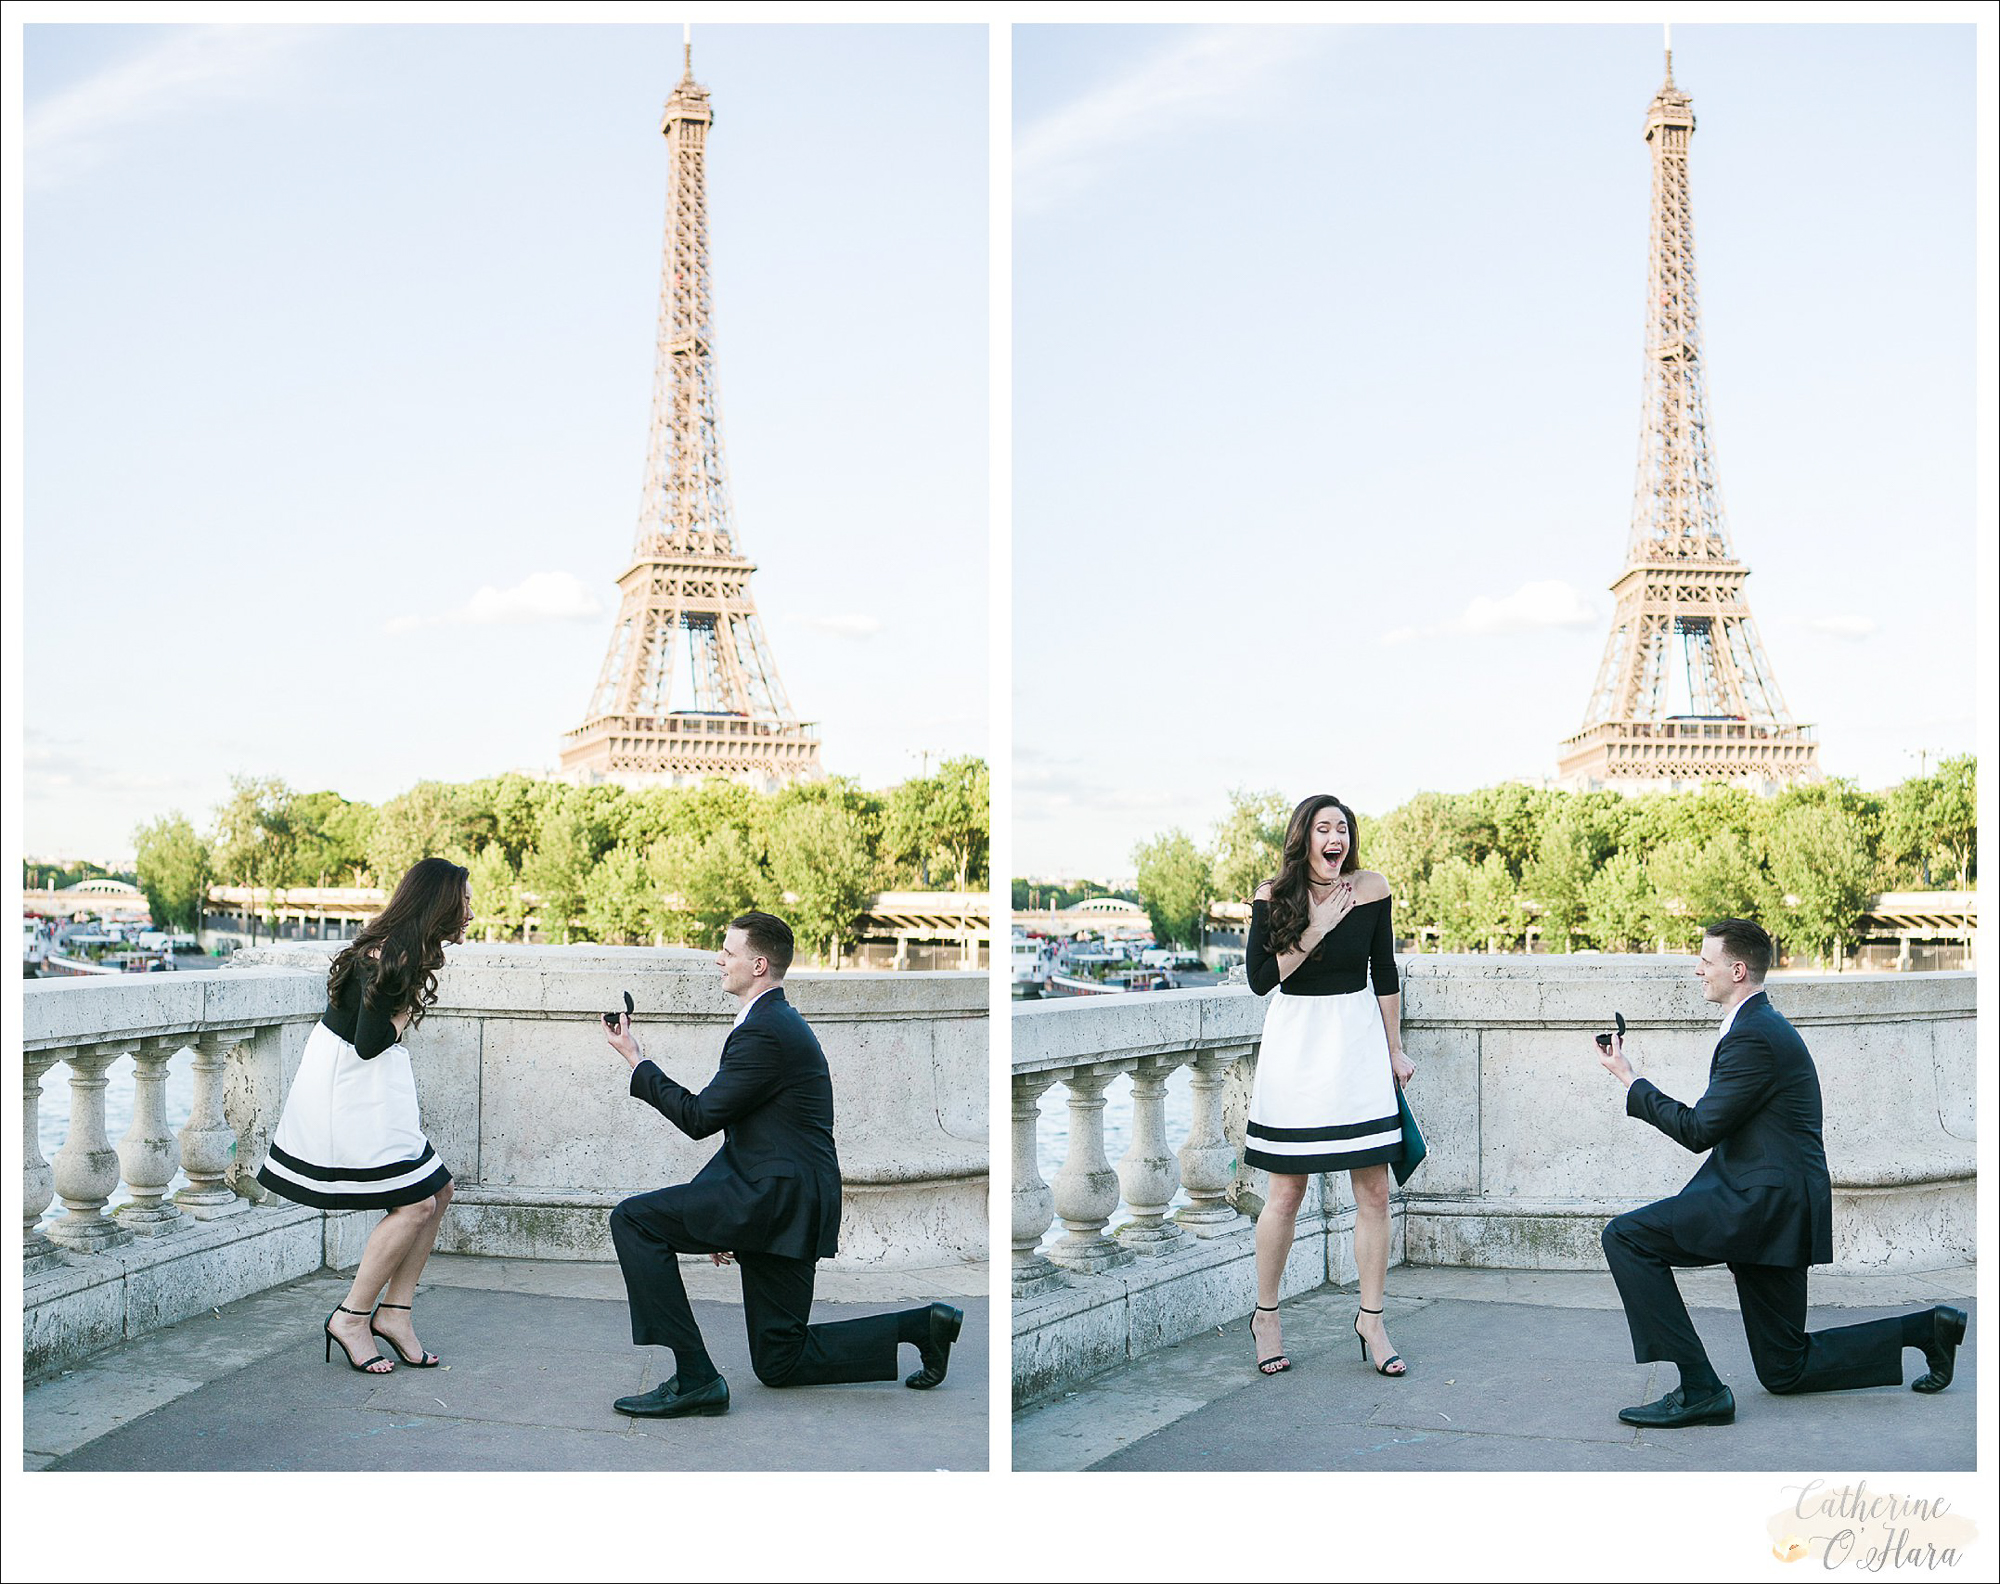 surprise proposal engagement photographer paris france-08.jpg